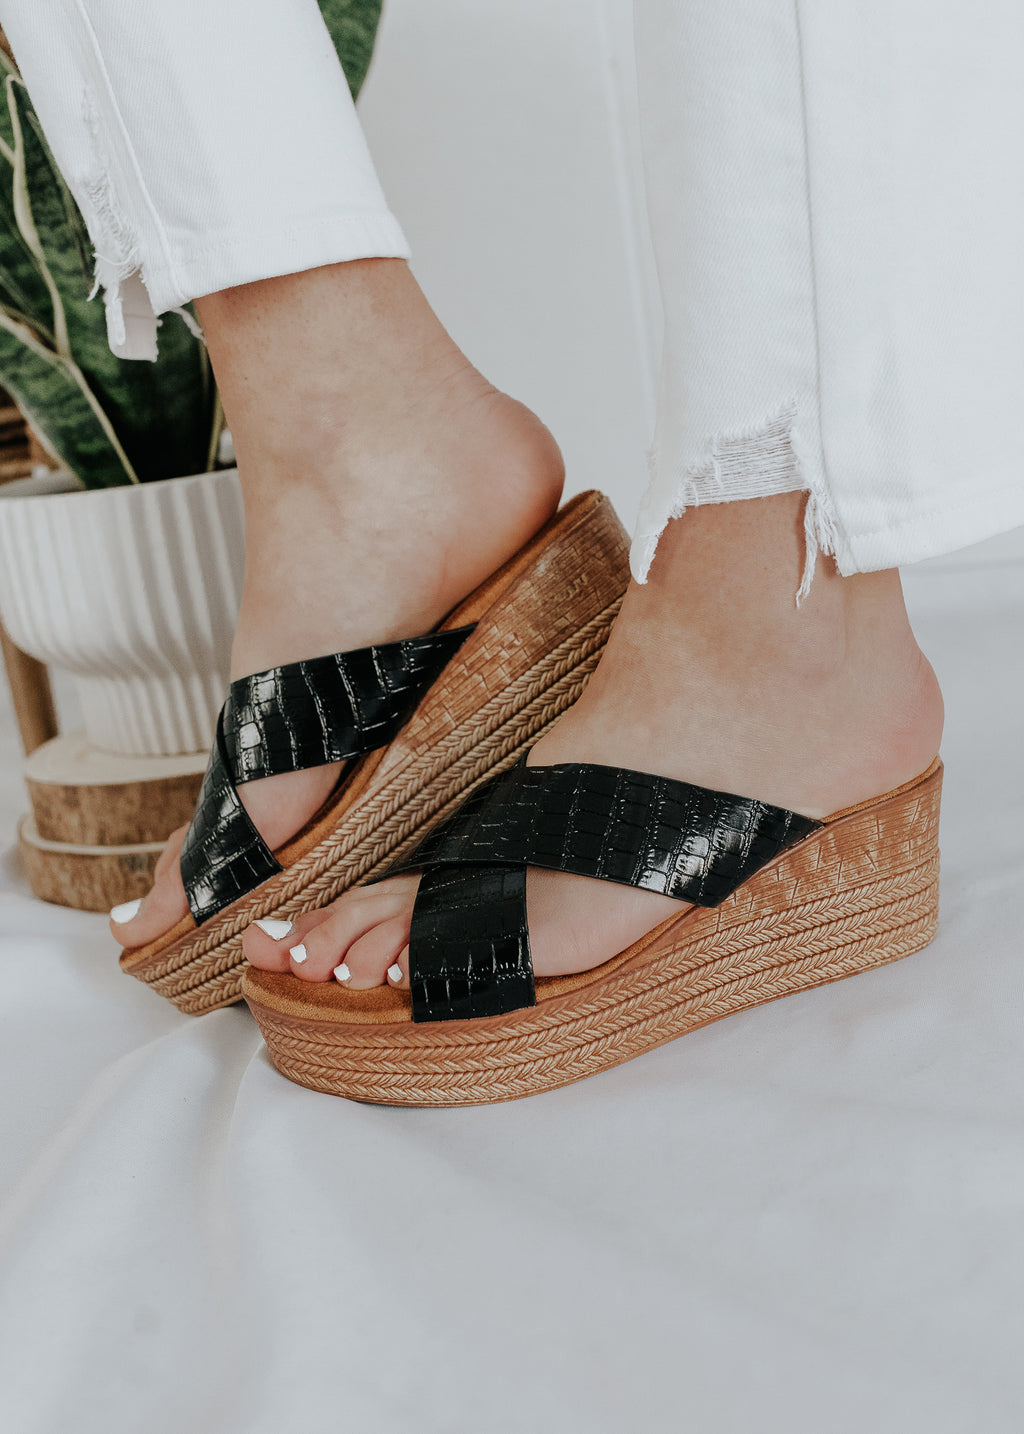 """Never Look Back"" Diagonal Strap Platform Sandals - Black"